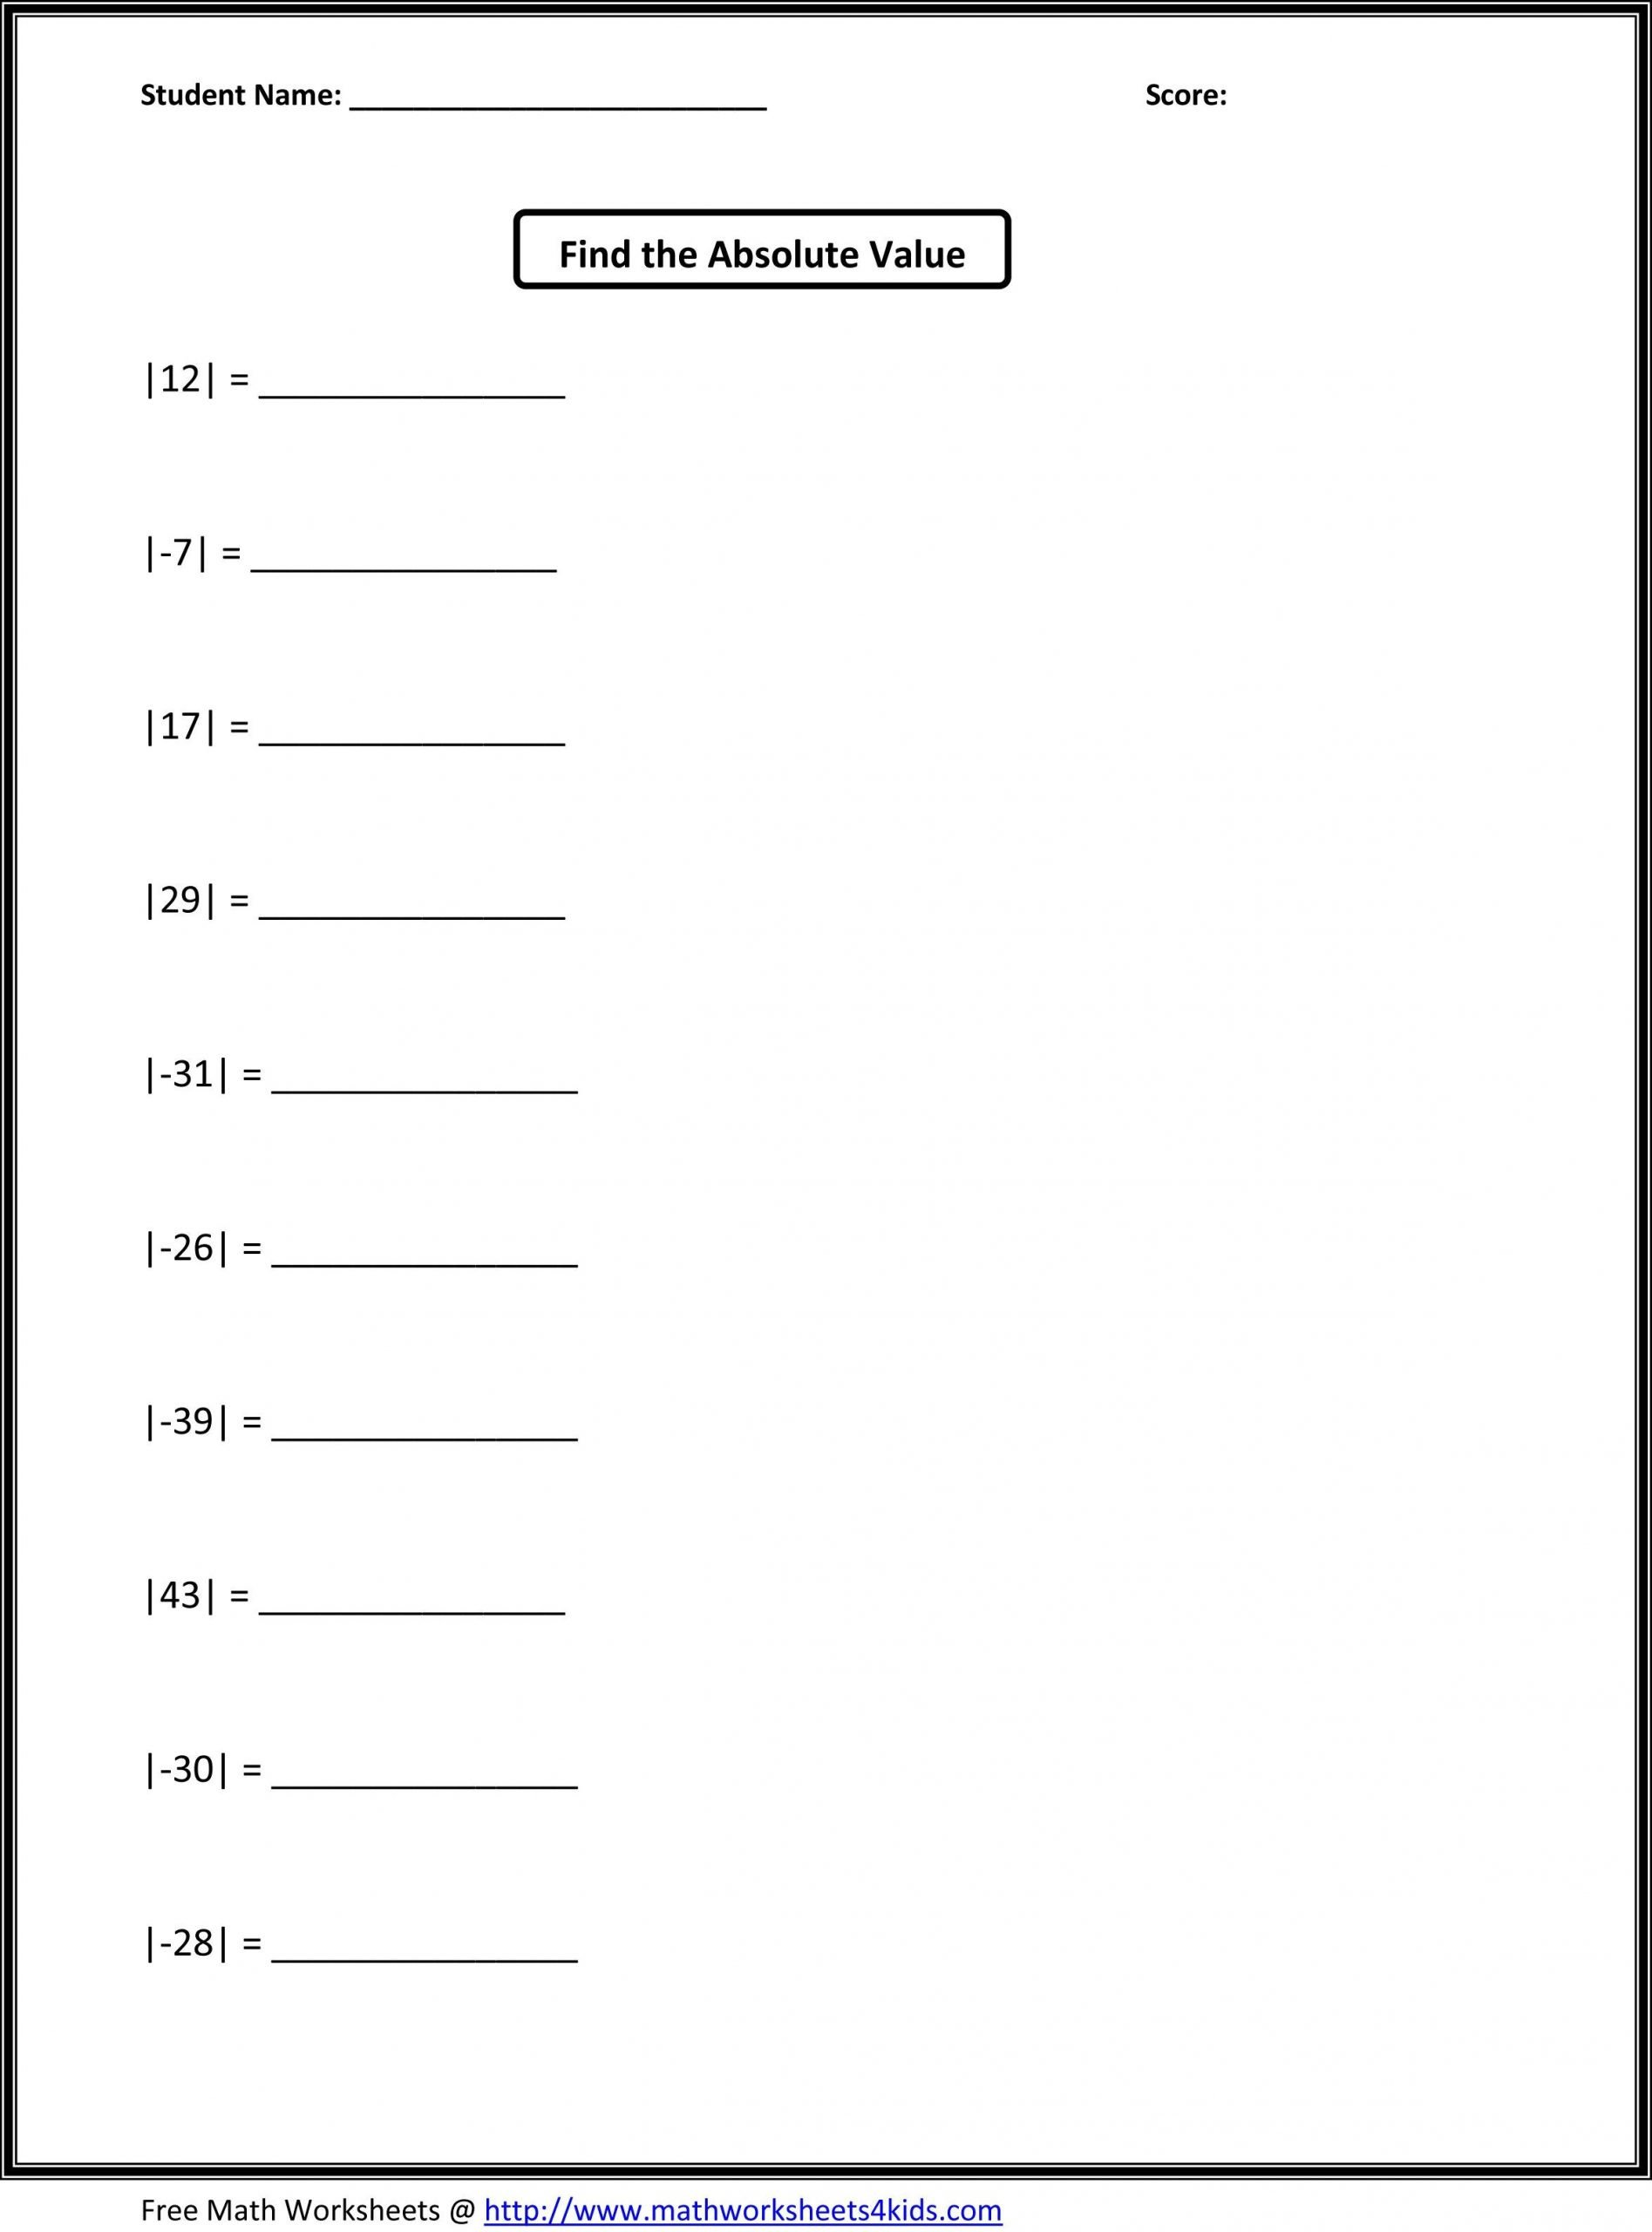 Line Graphs Worksheets 5th Grade Worksheets 5th Grade Worksheets to Print Printable and